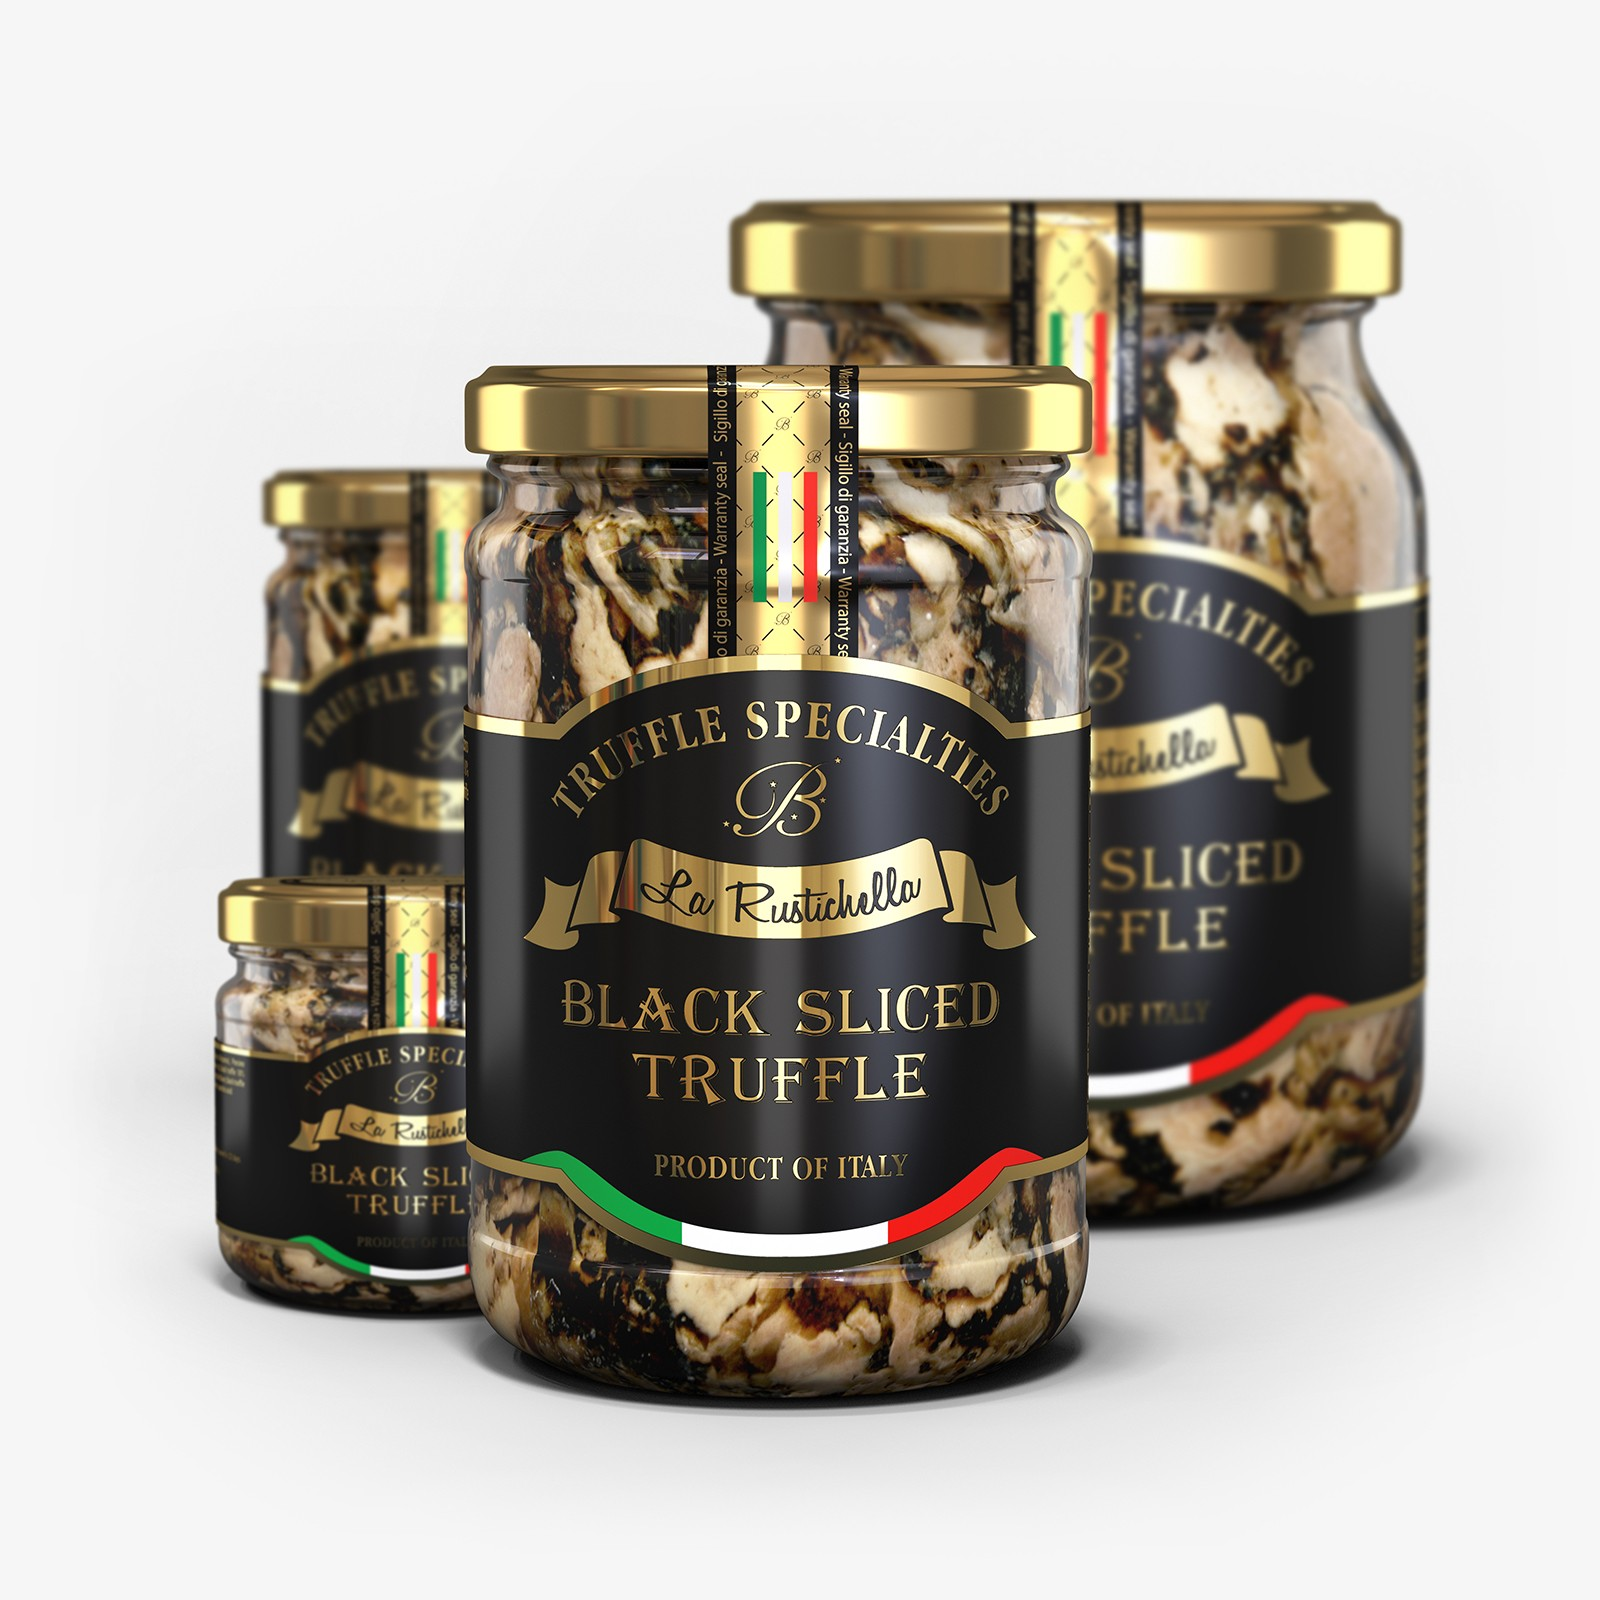 Black Sliced Truffle